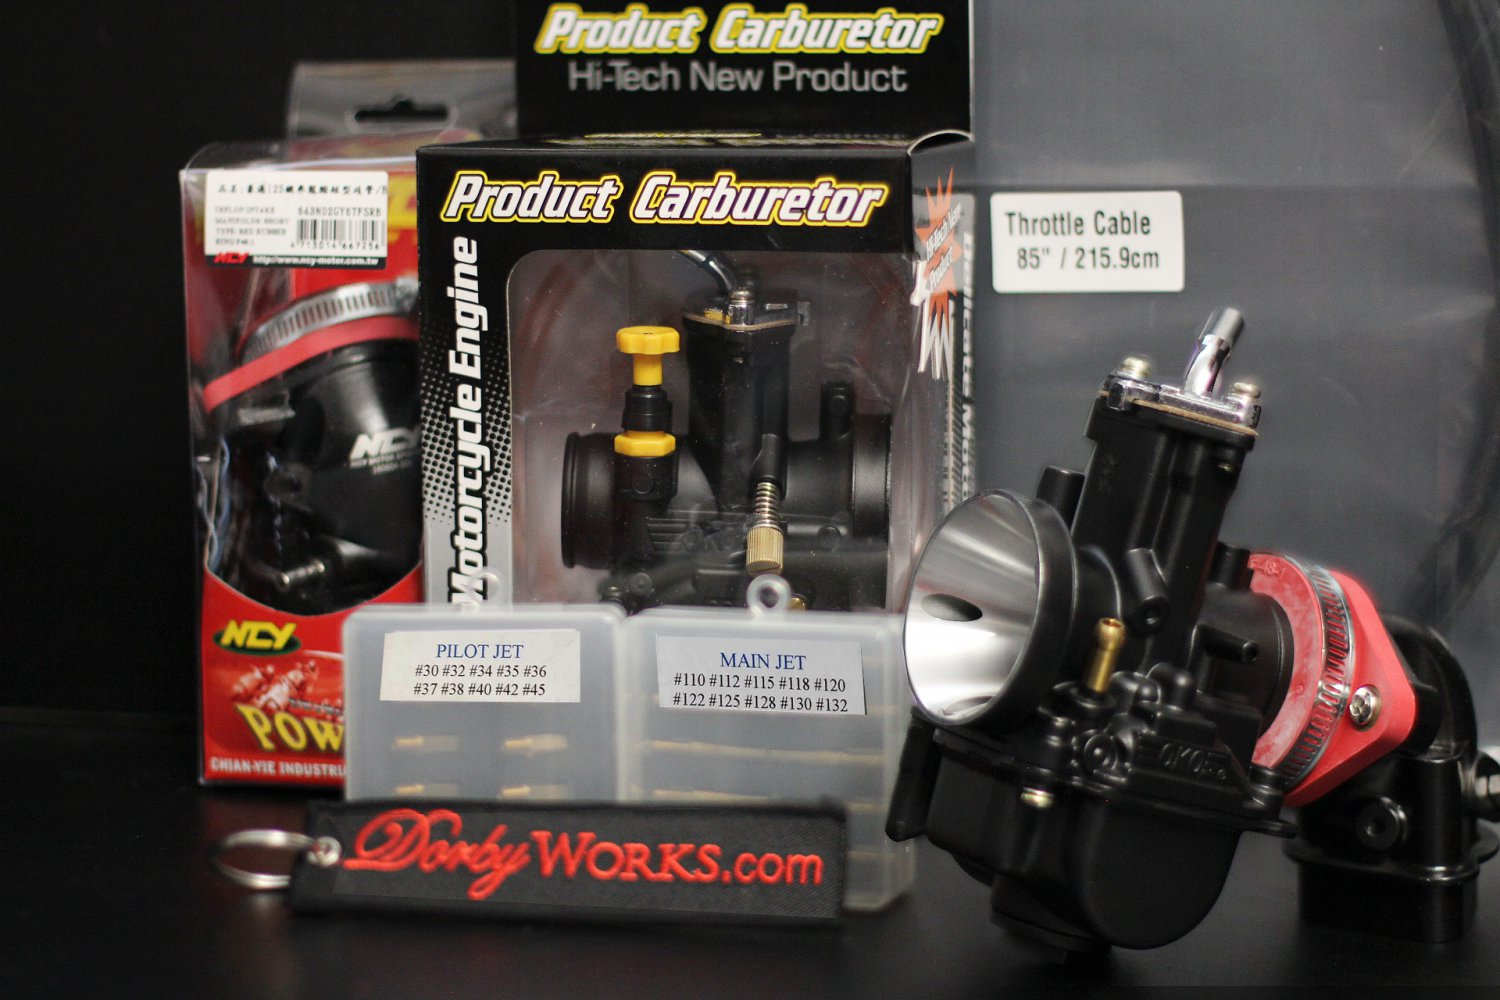 Dorbyworks custom OKO 30mm carburetor BUNDLE package  , cable , NCY intake, Pilot, Main jets